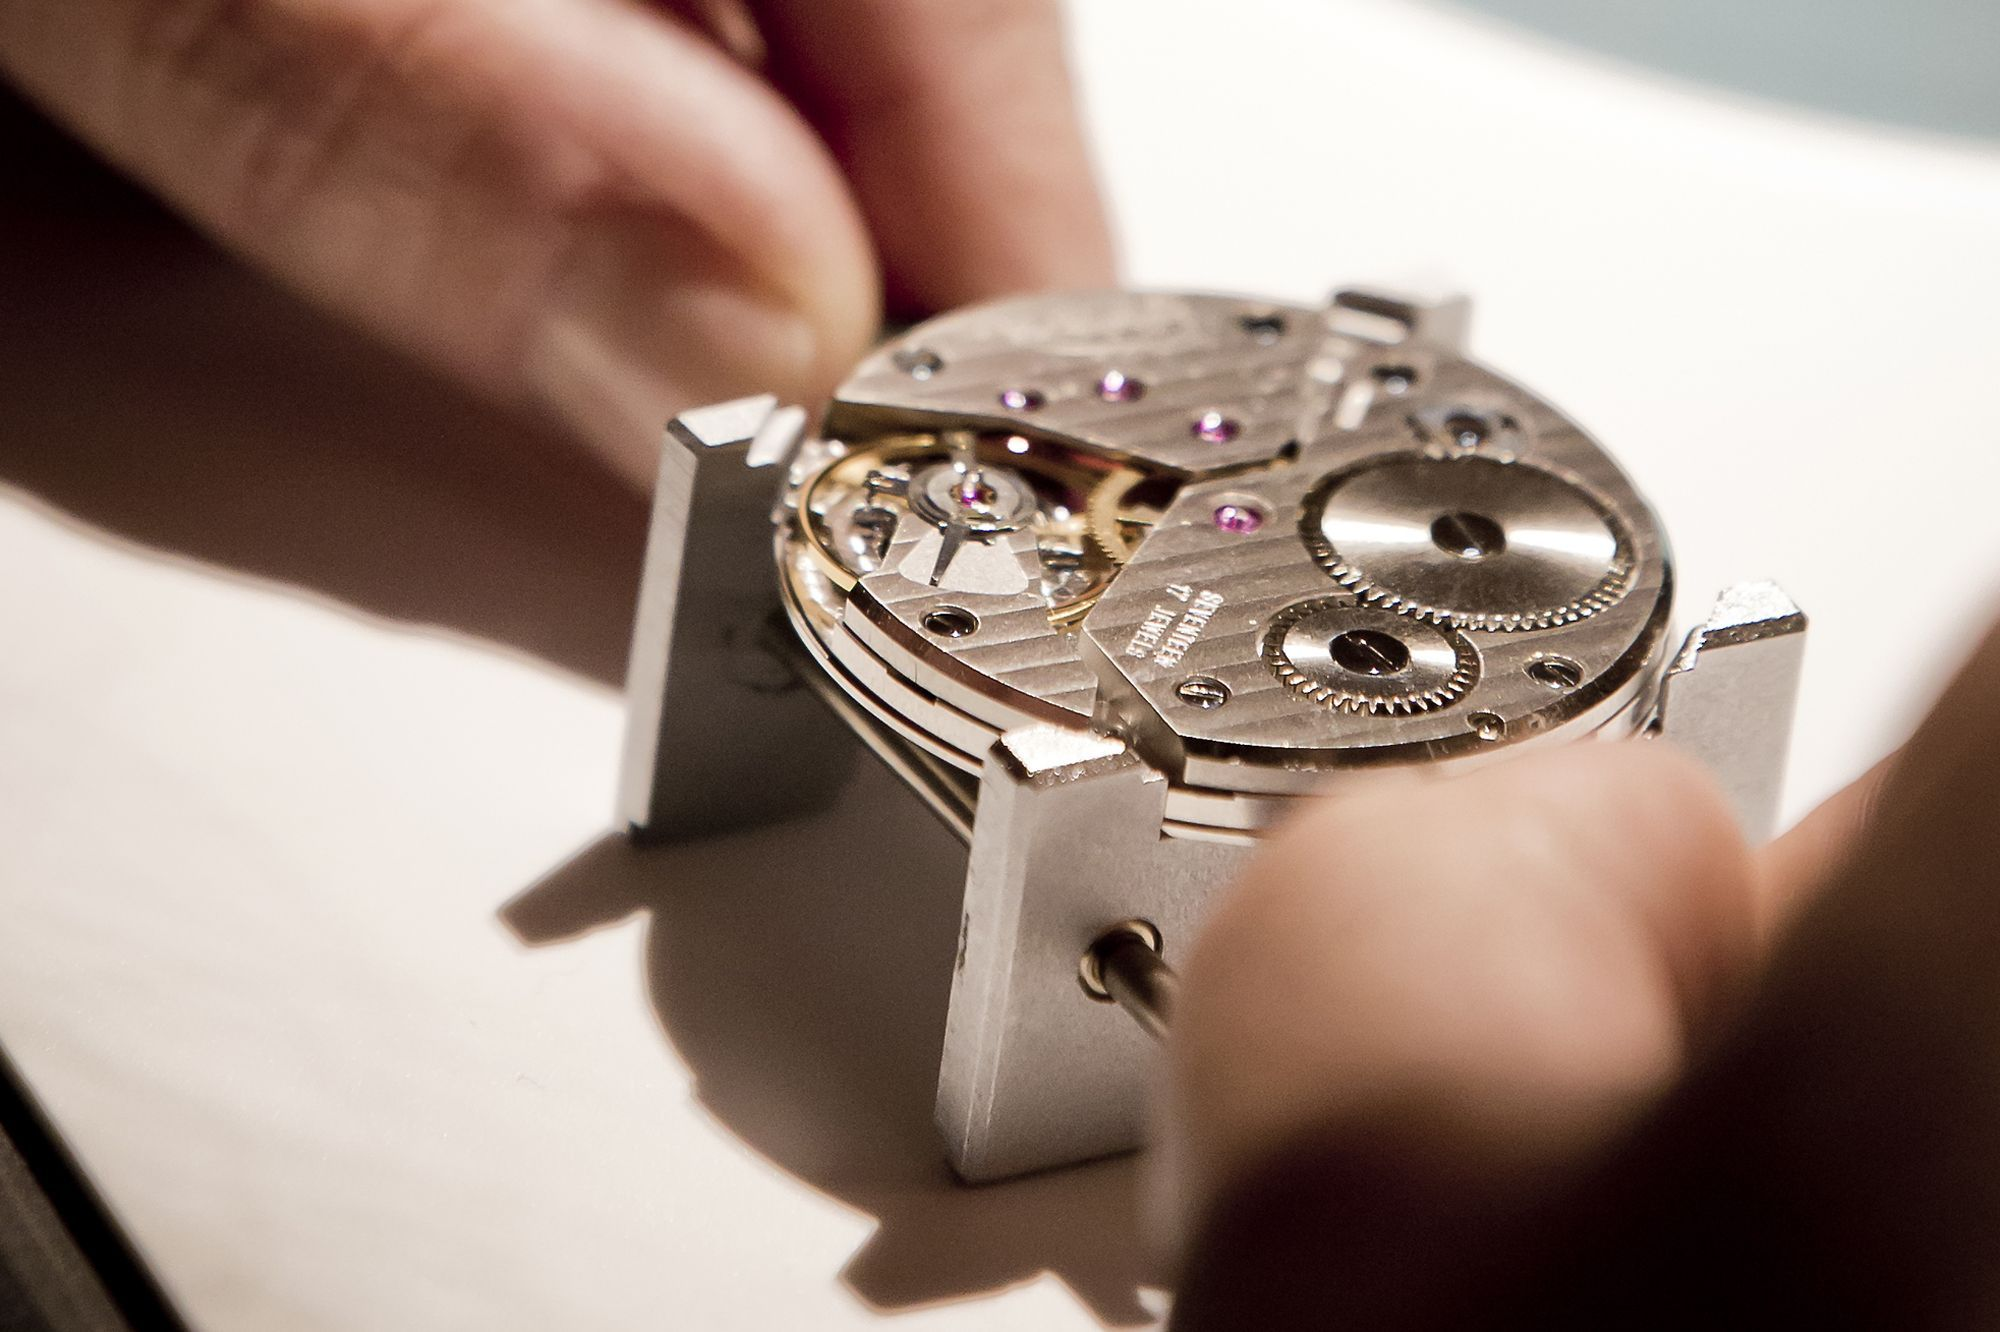 Discover the Wonders of Haute Holorgerie at SIHH 2019 - Fine Watchmaking sihh 2019 Discover the Wonders of Haute Horlogerie at SIHH 2019 Discover the Wonders of Haute Holorgerie at SIHH 2019 Fine Watchmaking